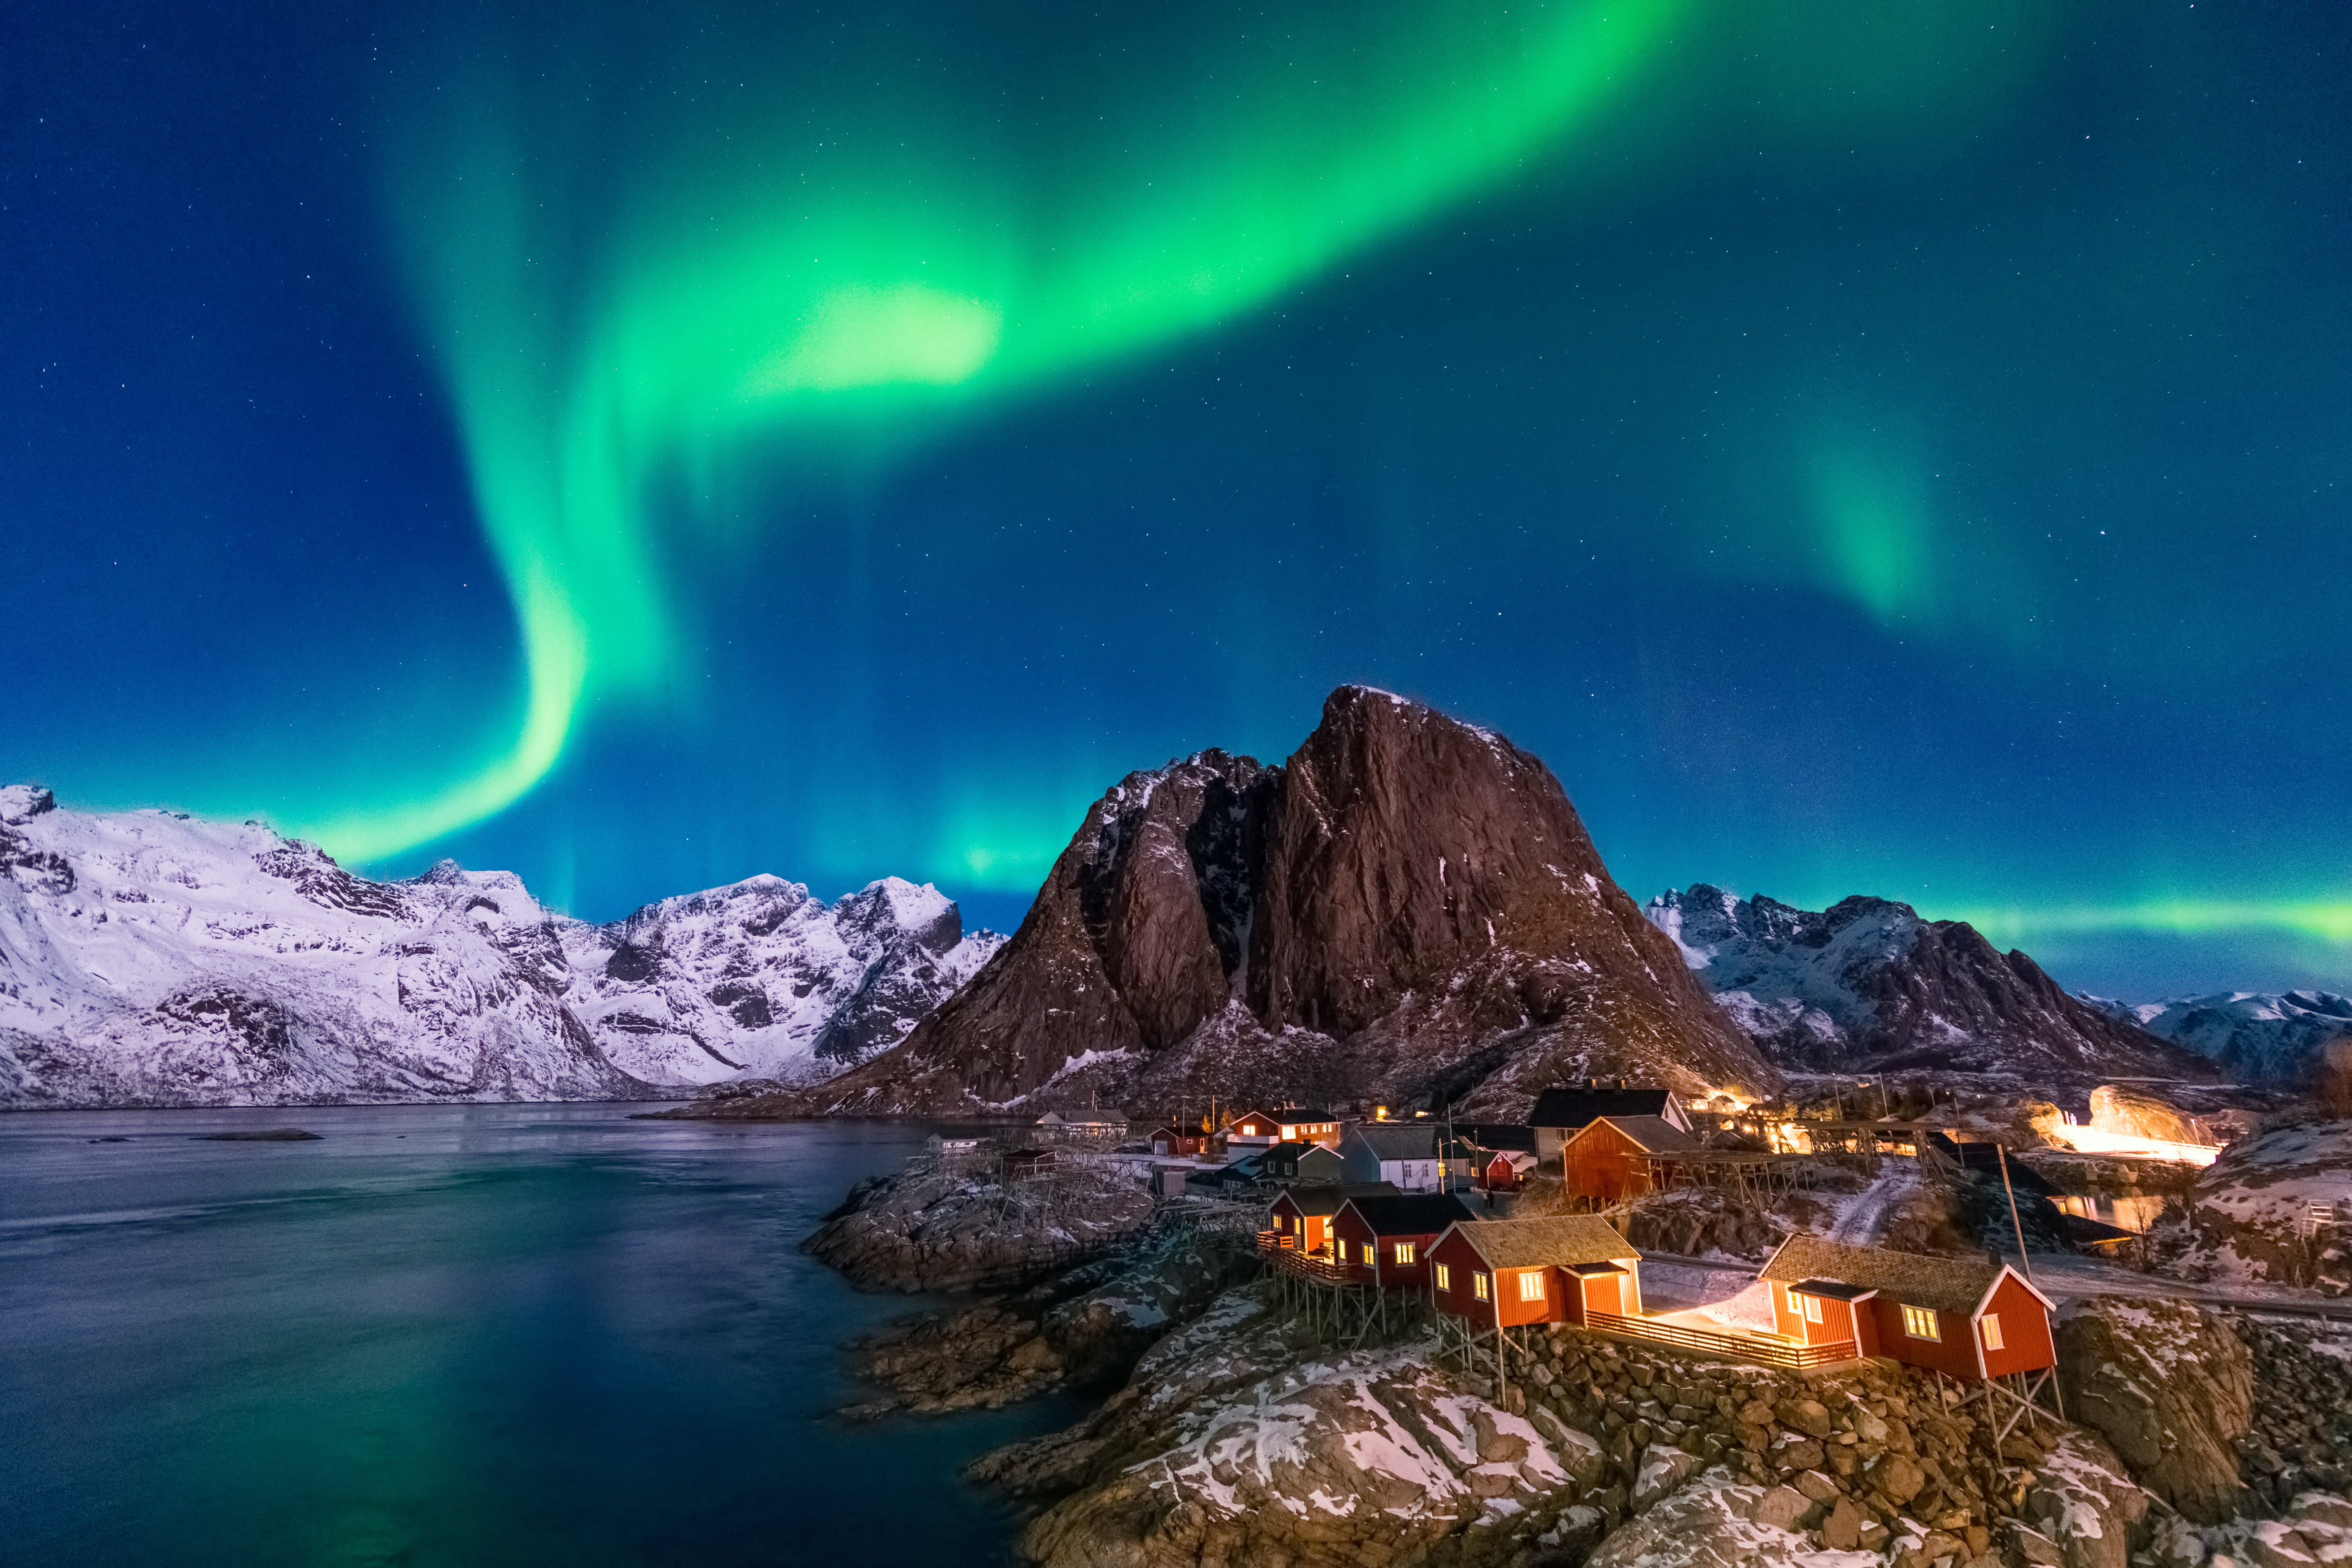 Northern Lights (Aurora Borealis) above the iconic view of a picturesque fishing village in Hamnoy (Hamnøy), Lofoten islands, Norway in winter.